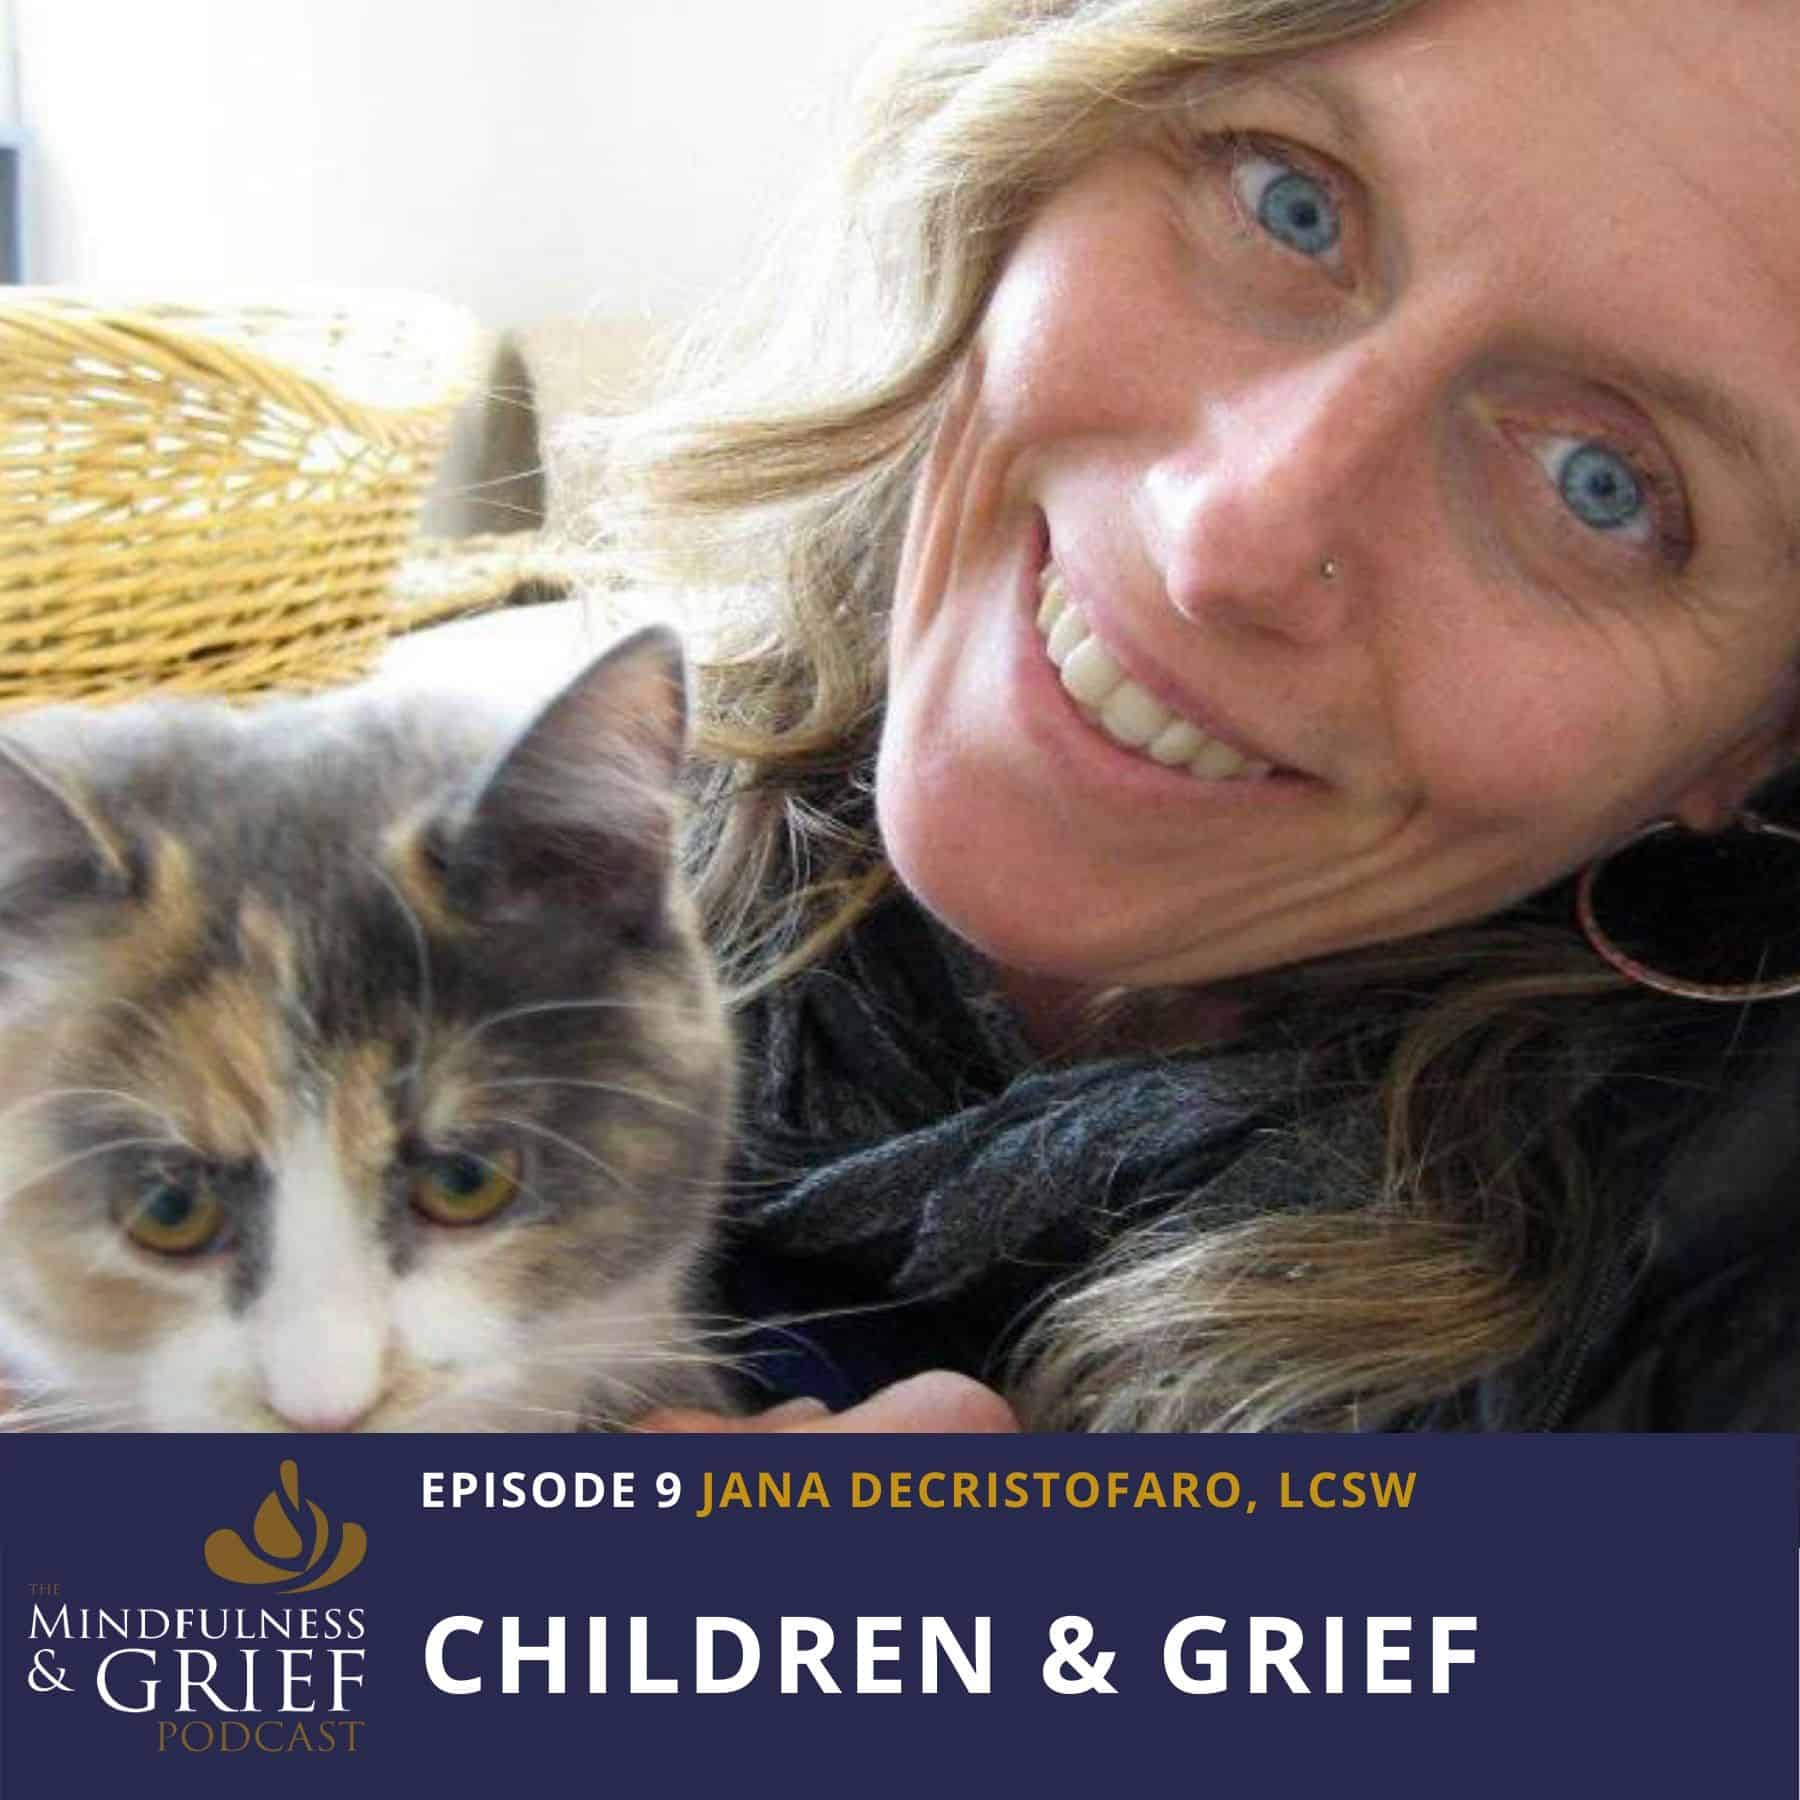 Children & Grief_ How To Help Kids Cope With Loss Early In Life with Jana DeCristofaro, LCSW